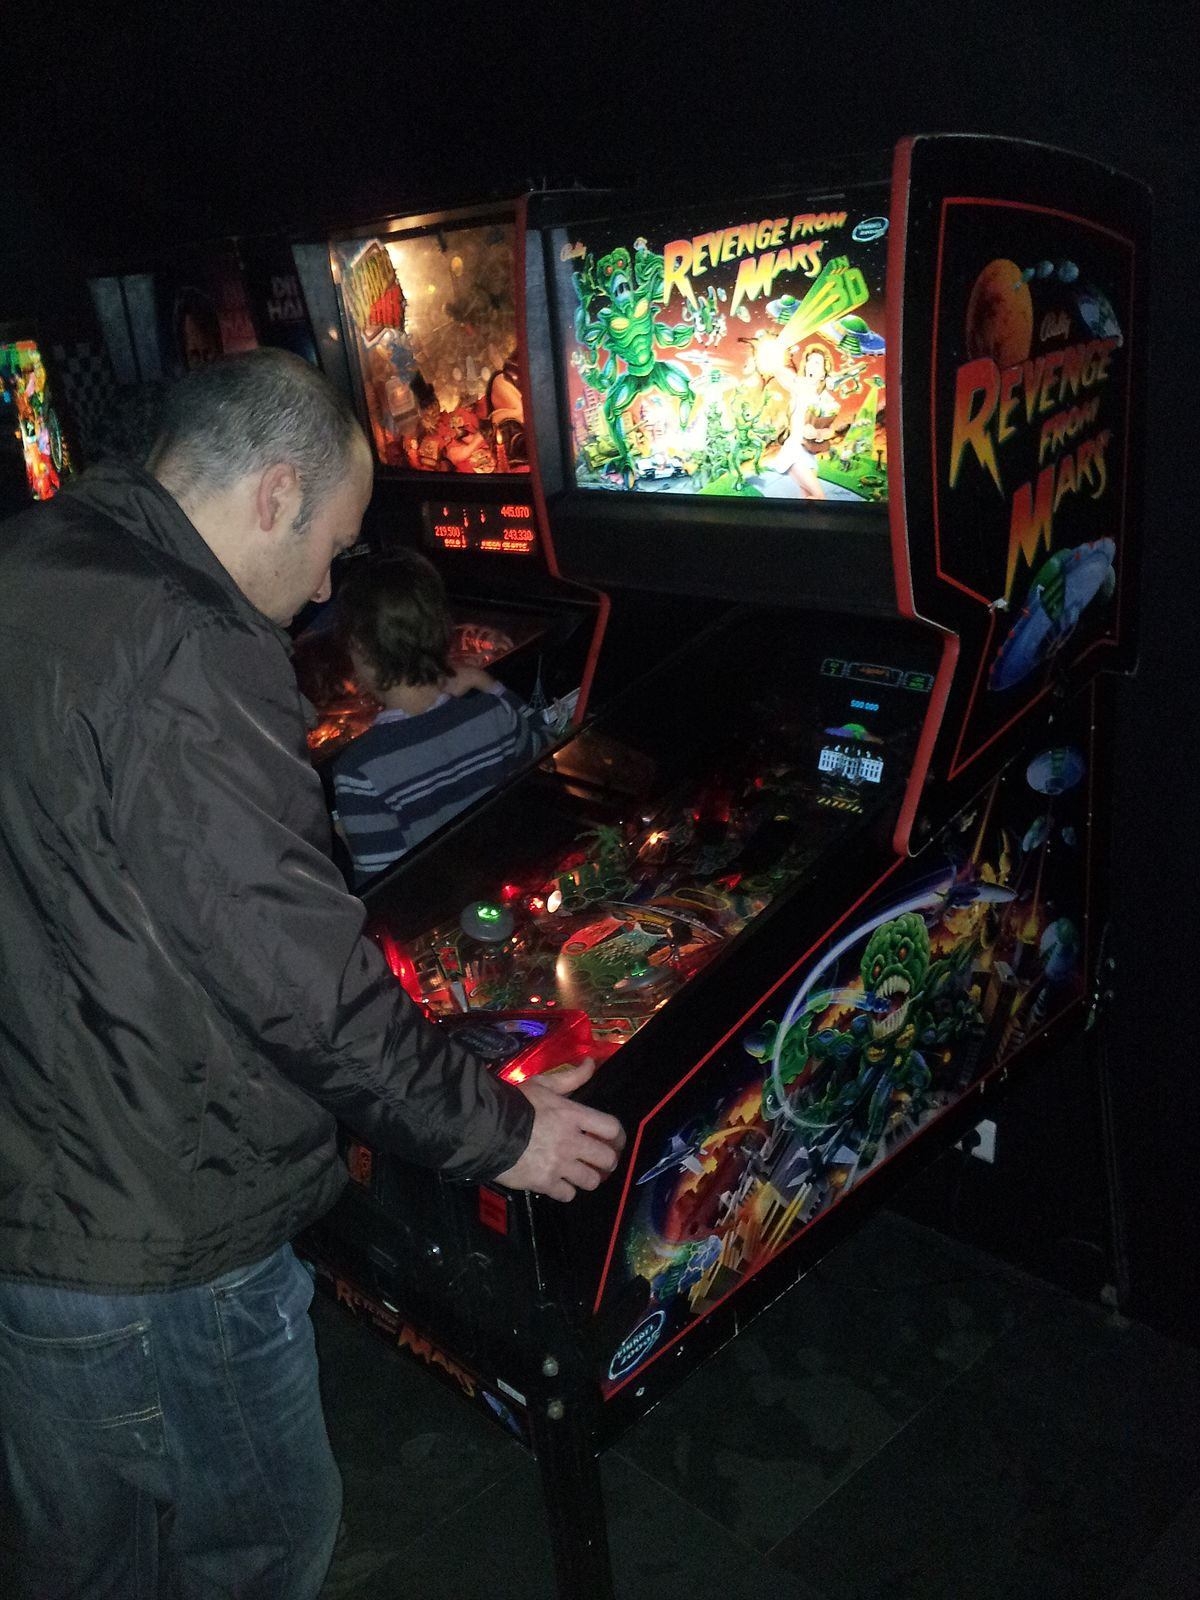 Star Wars Pinball Machine >> Revenge from Mars - Wikipedia